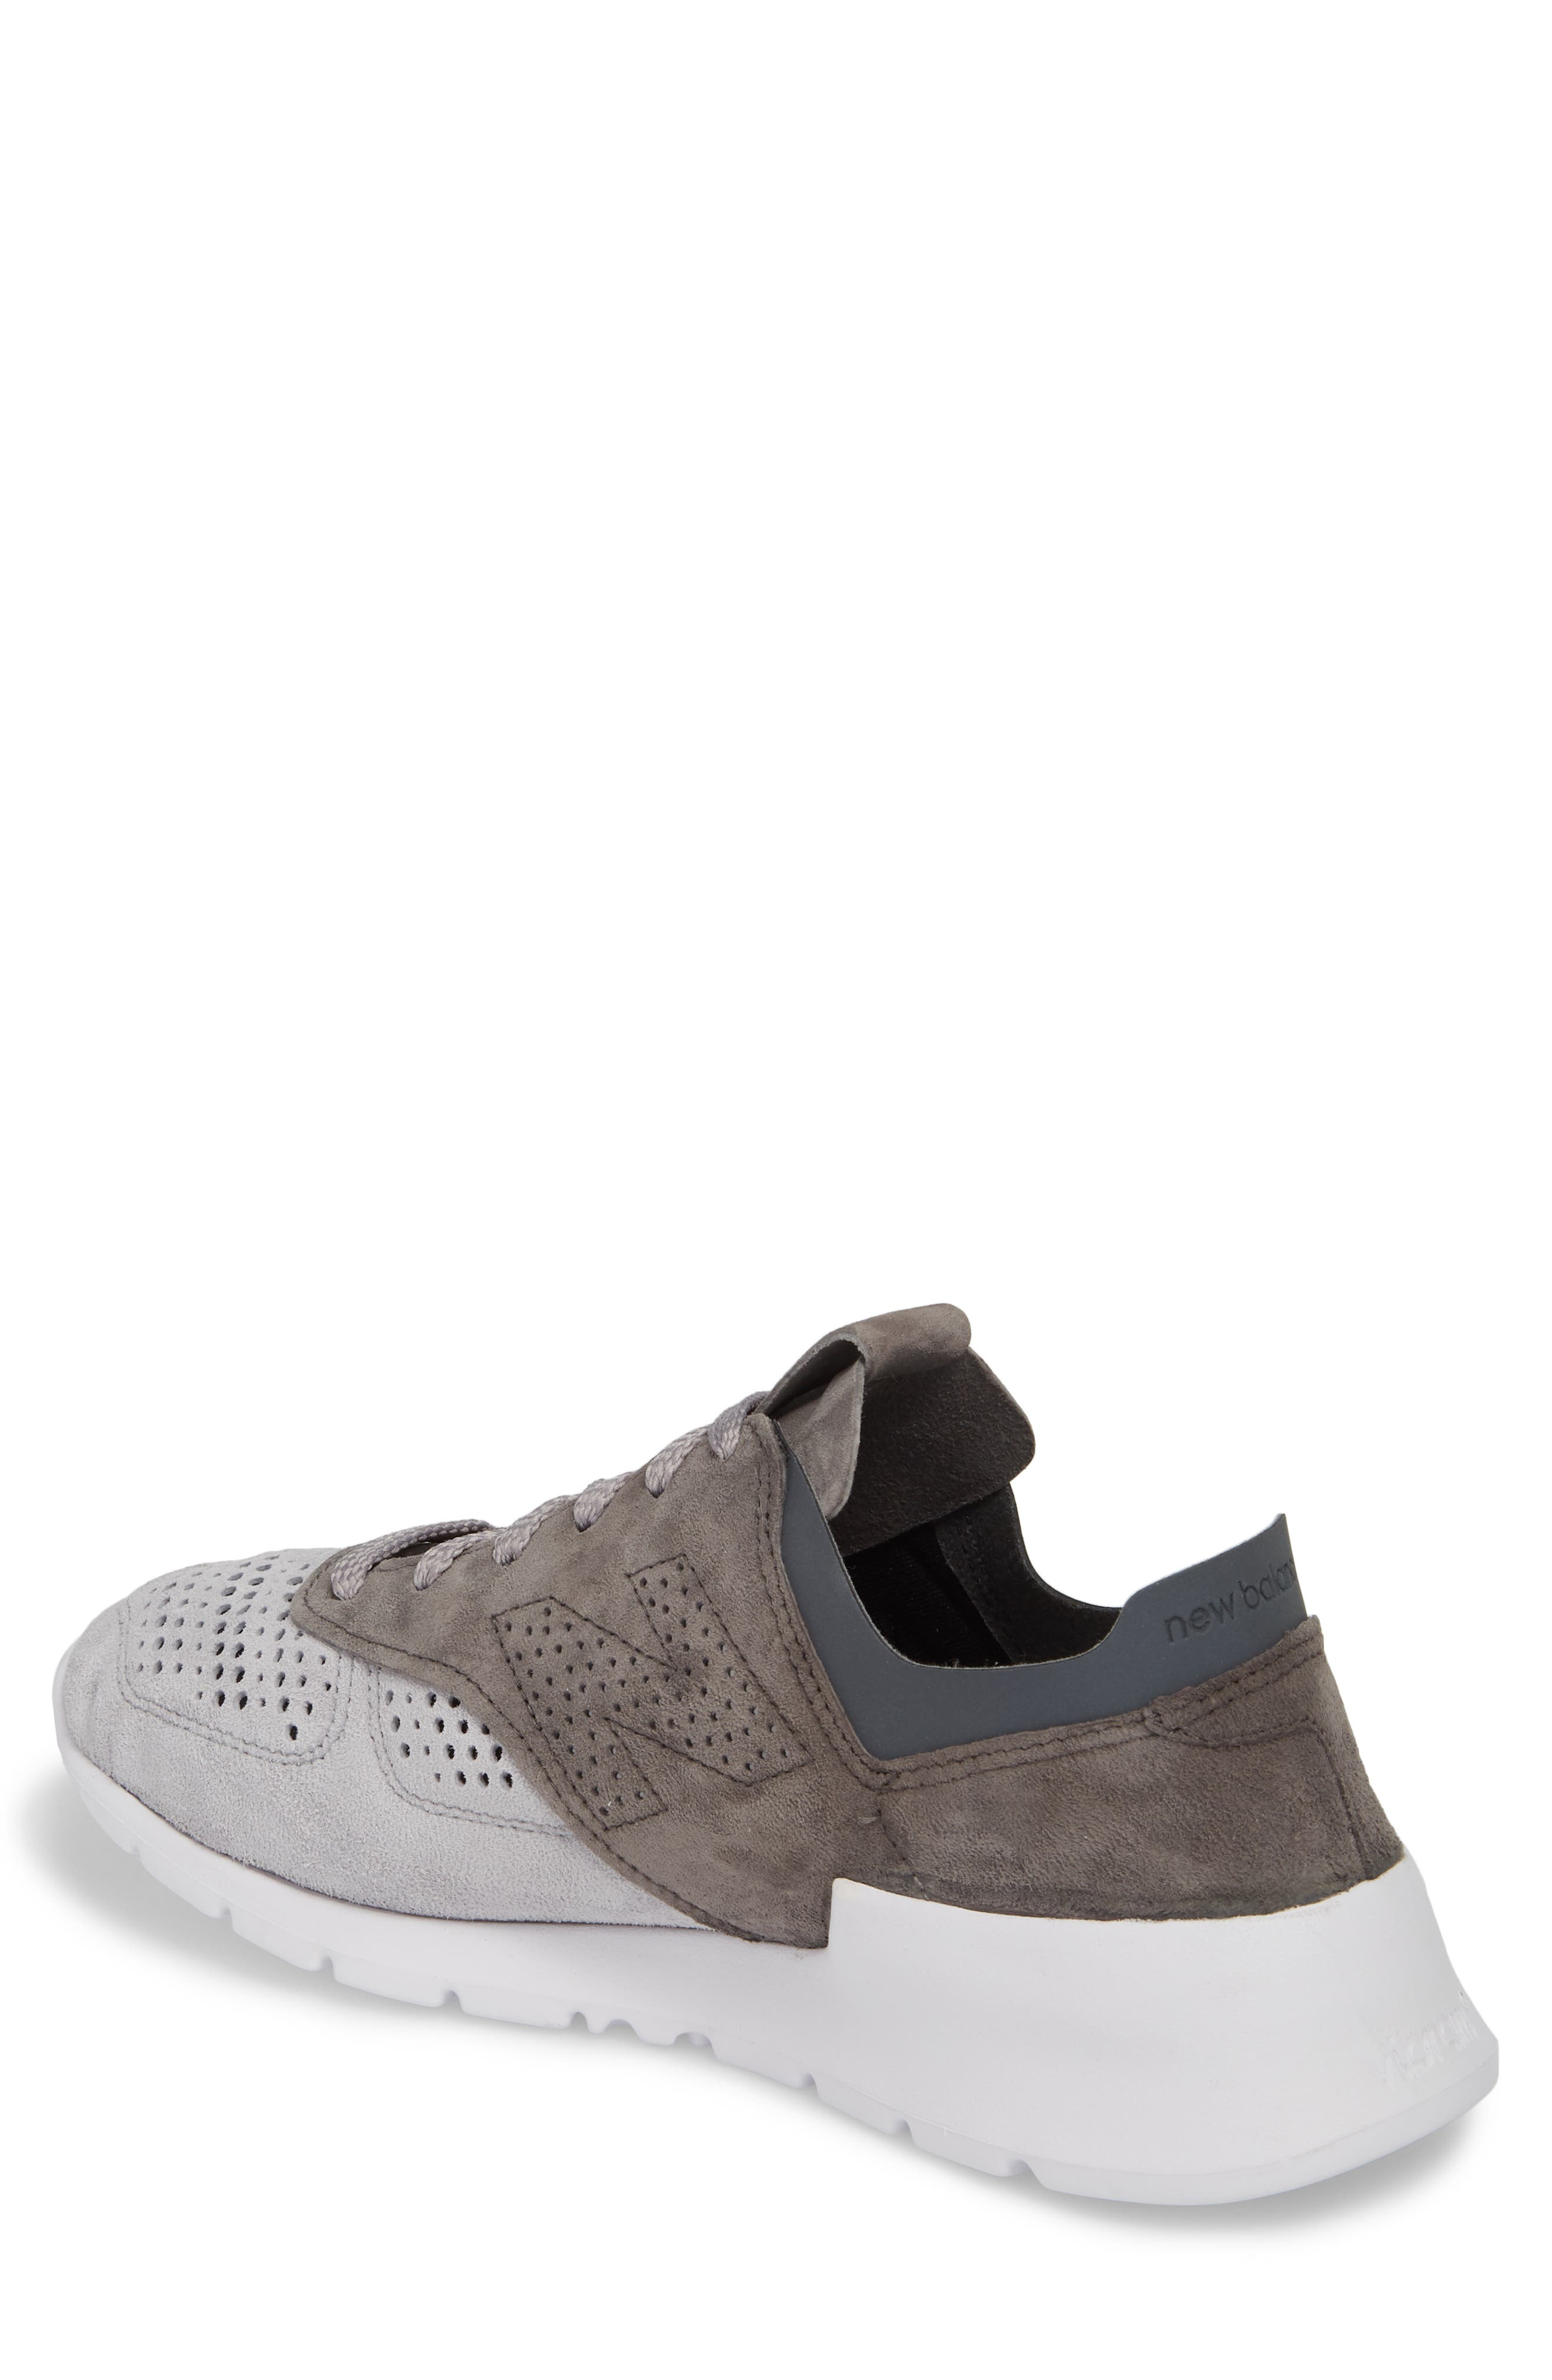 1978 Perforated Sneaker,                             Alternate thumbnail 2, color,                             Grey